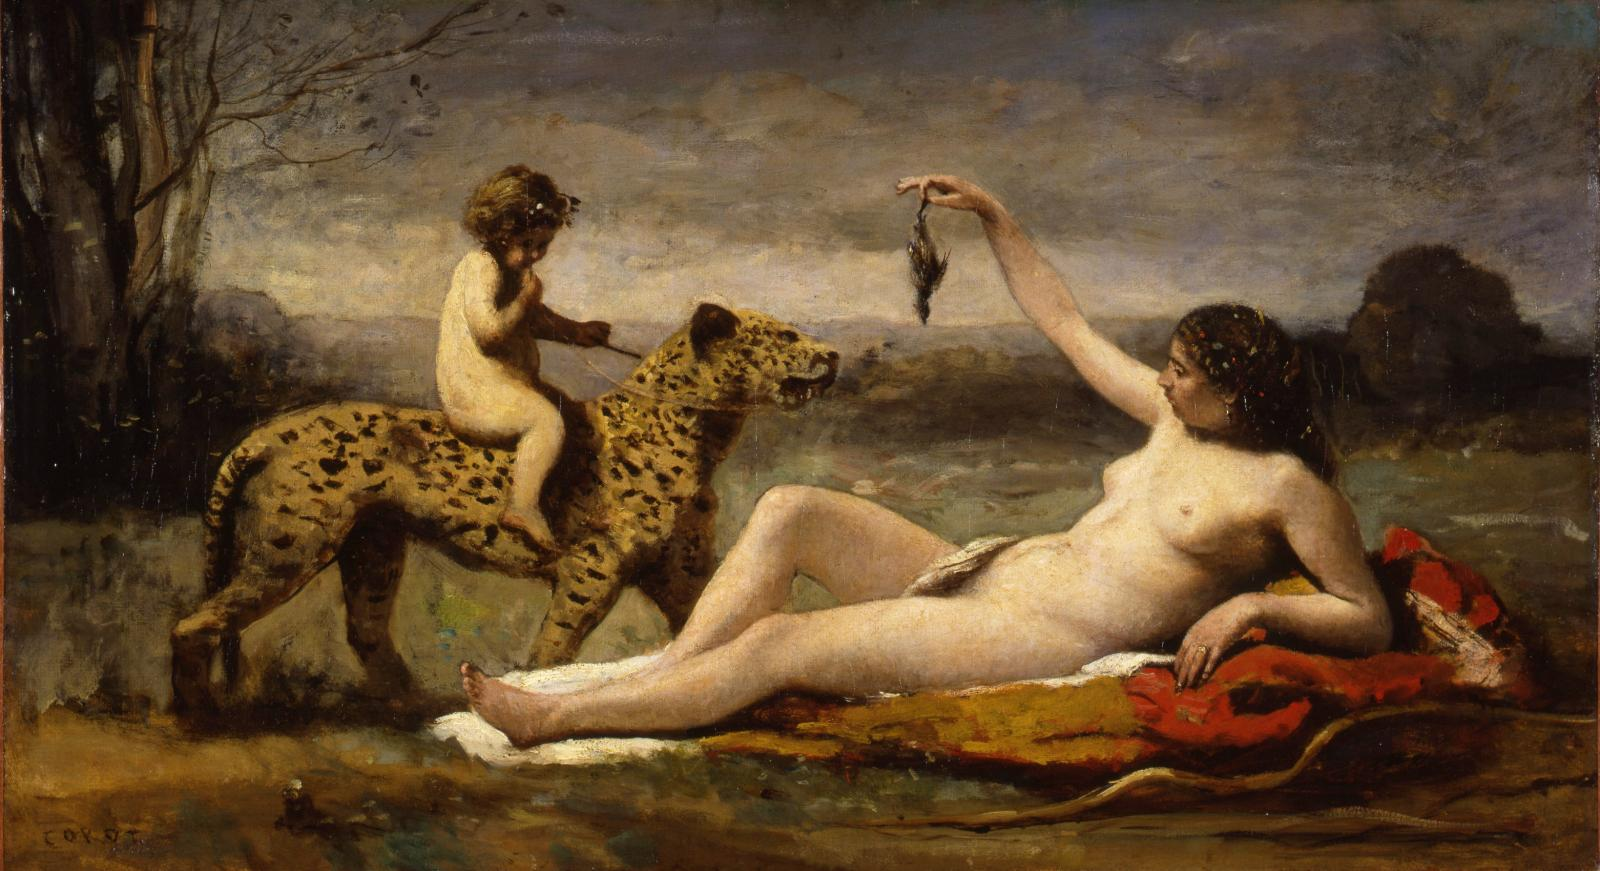 """Bacchante à la panthère"", c. 1855-1860, oil on canvas, Shelburne (Vermont), Shelburne Museum."